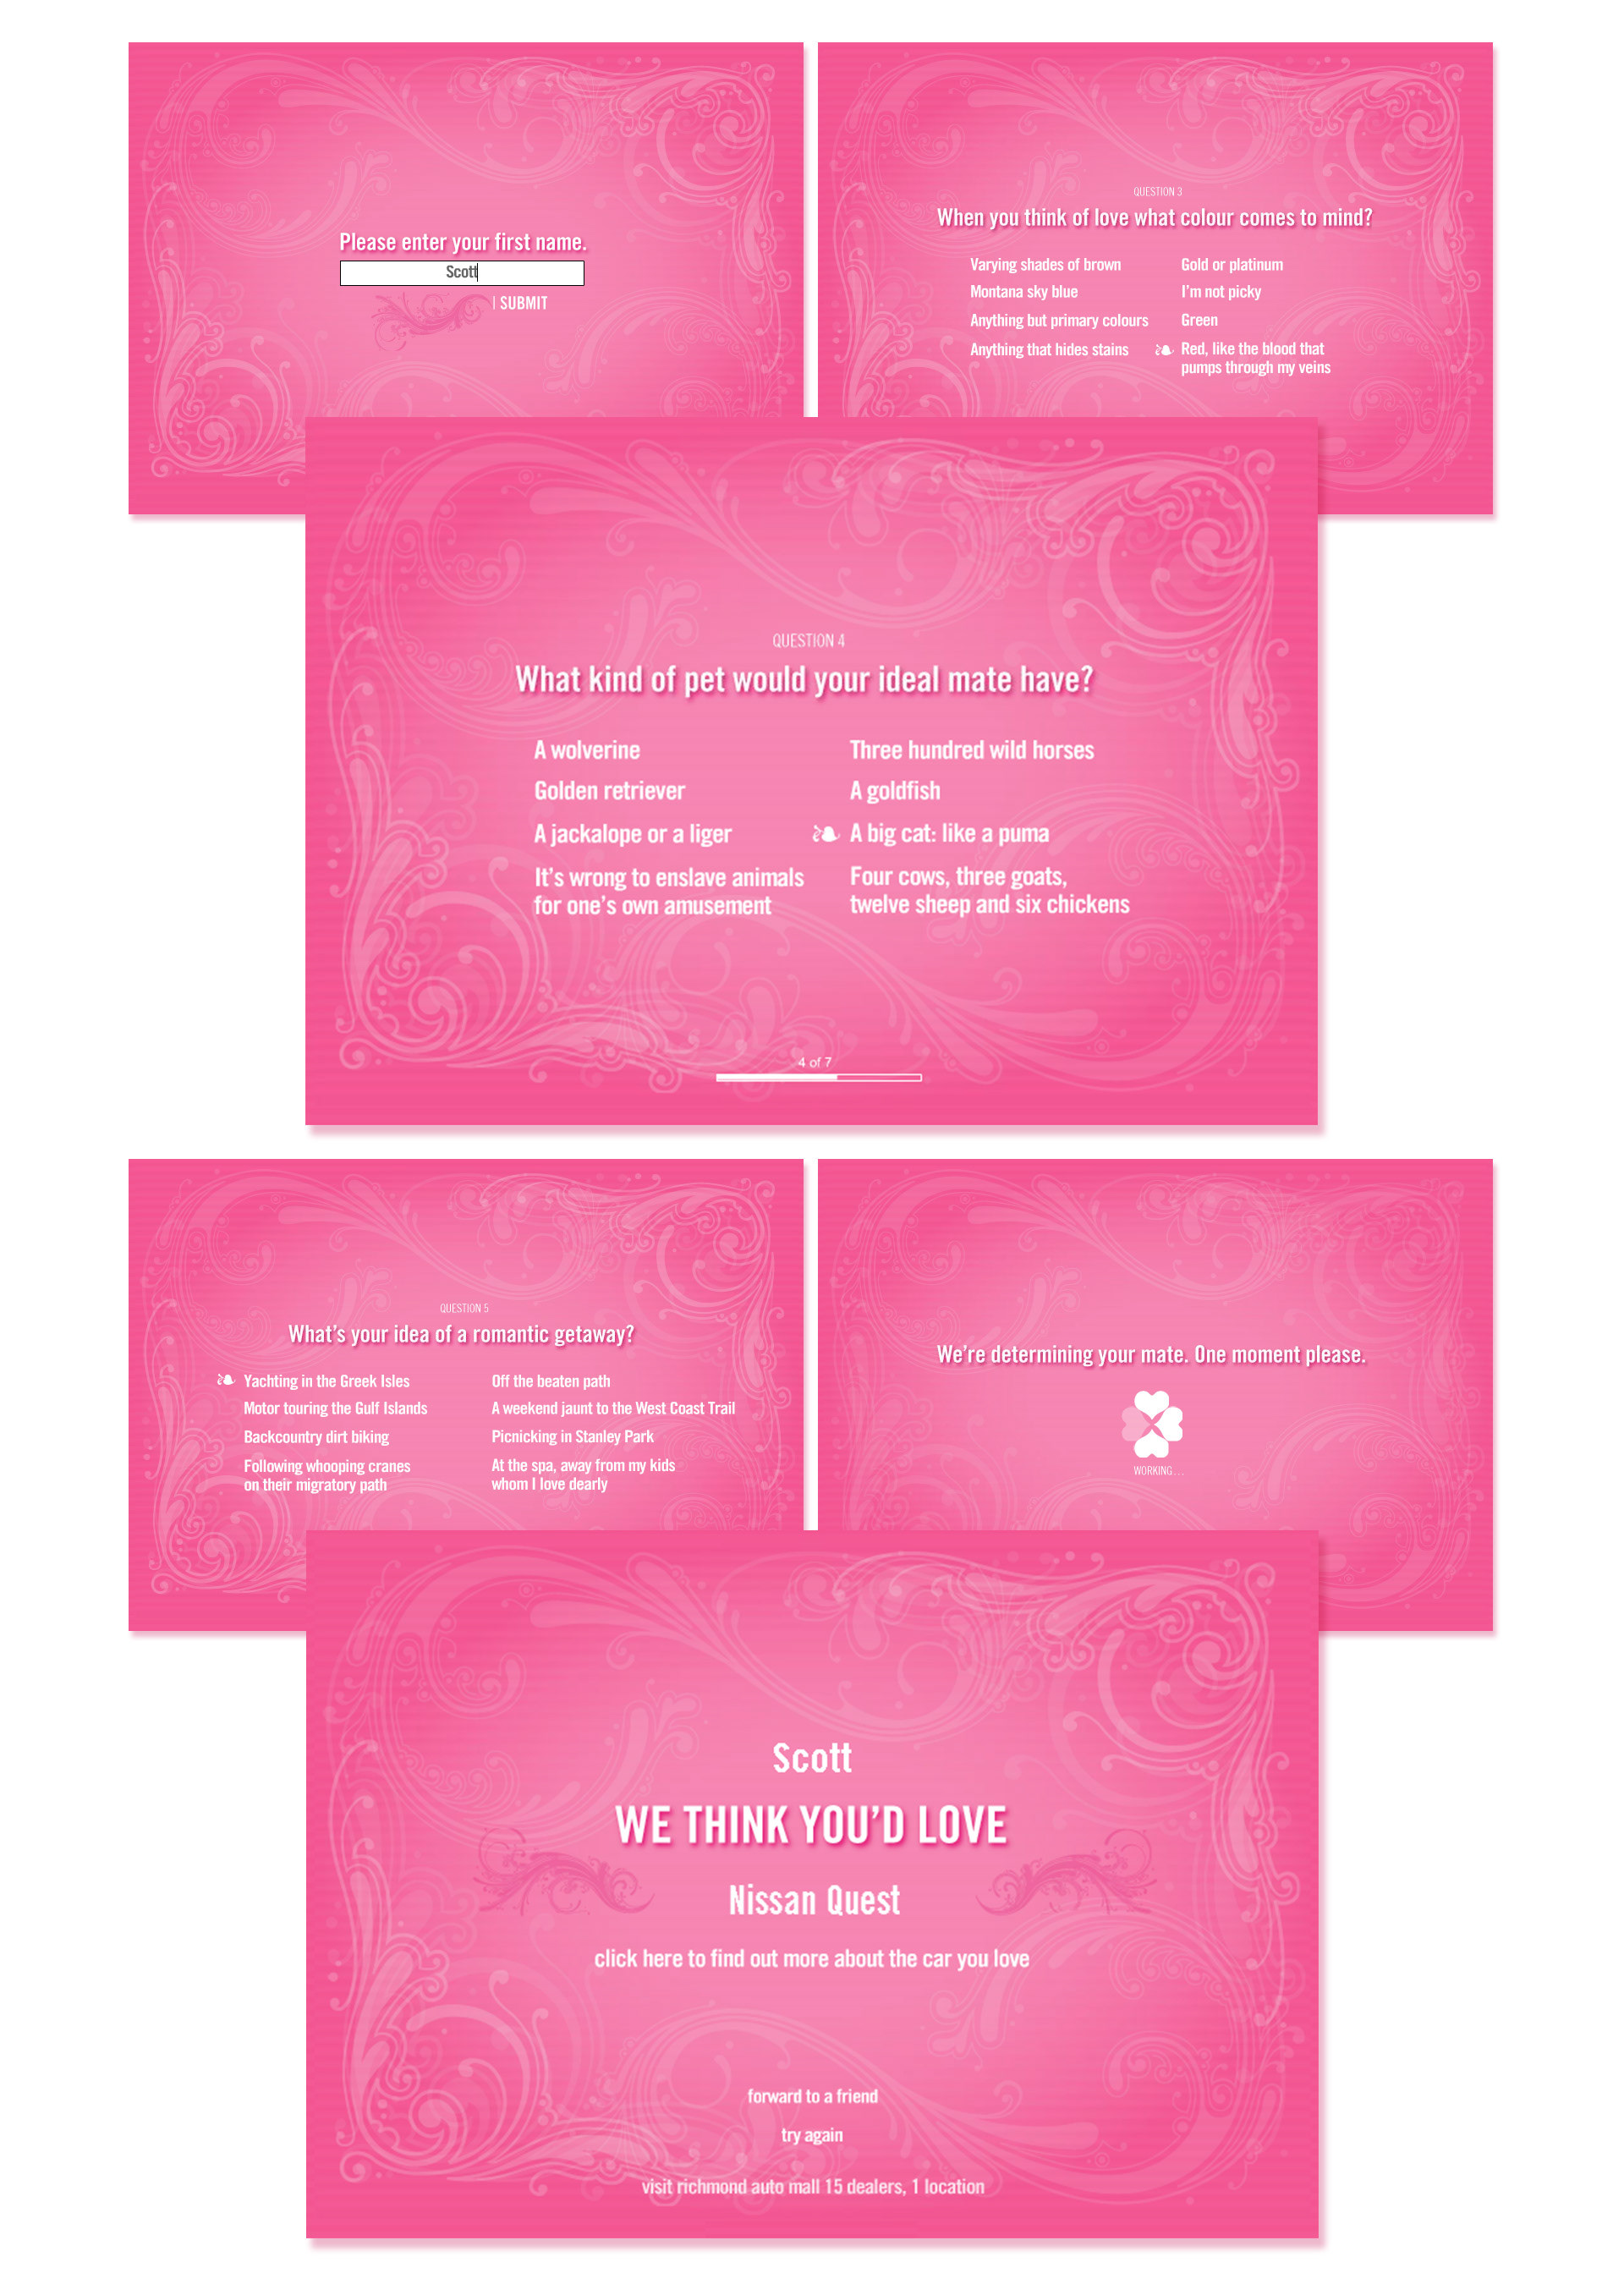 Uncategorized Love Calculator For Kids scott shymko associate creative directorad to extend its campaign find the car you love into digital space we created automolove calculator a cross between cosmo magazine survey